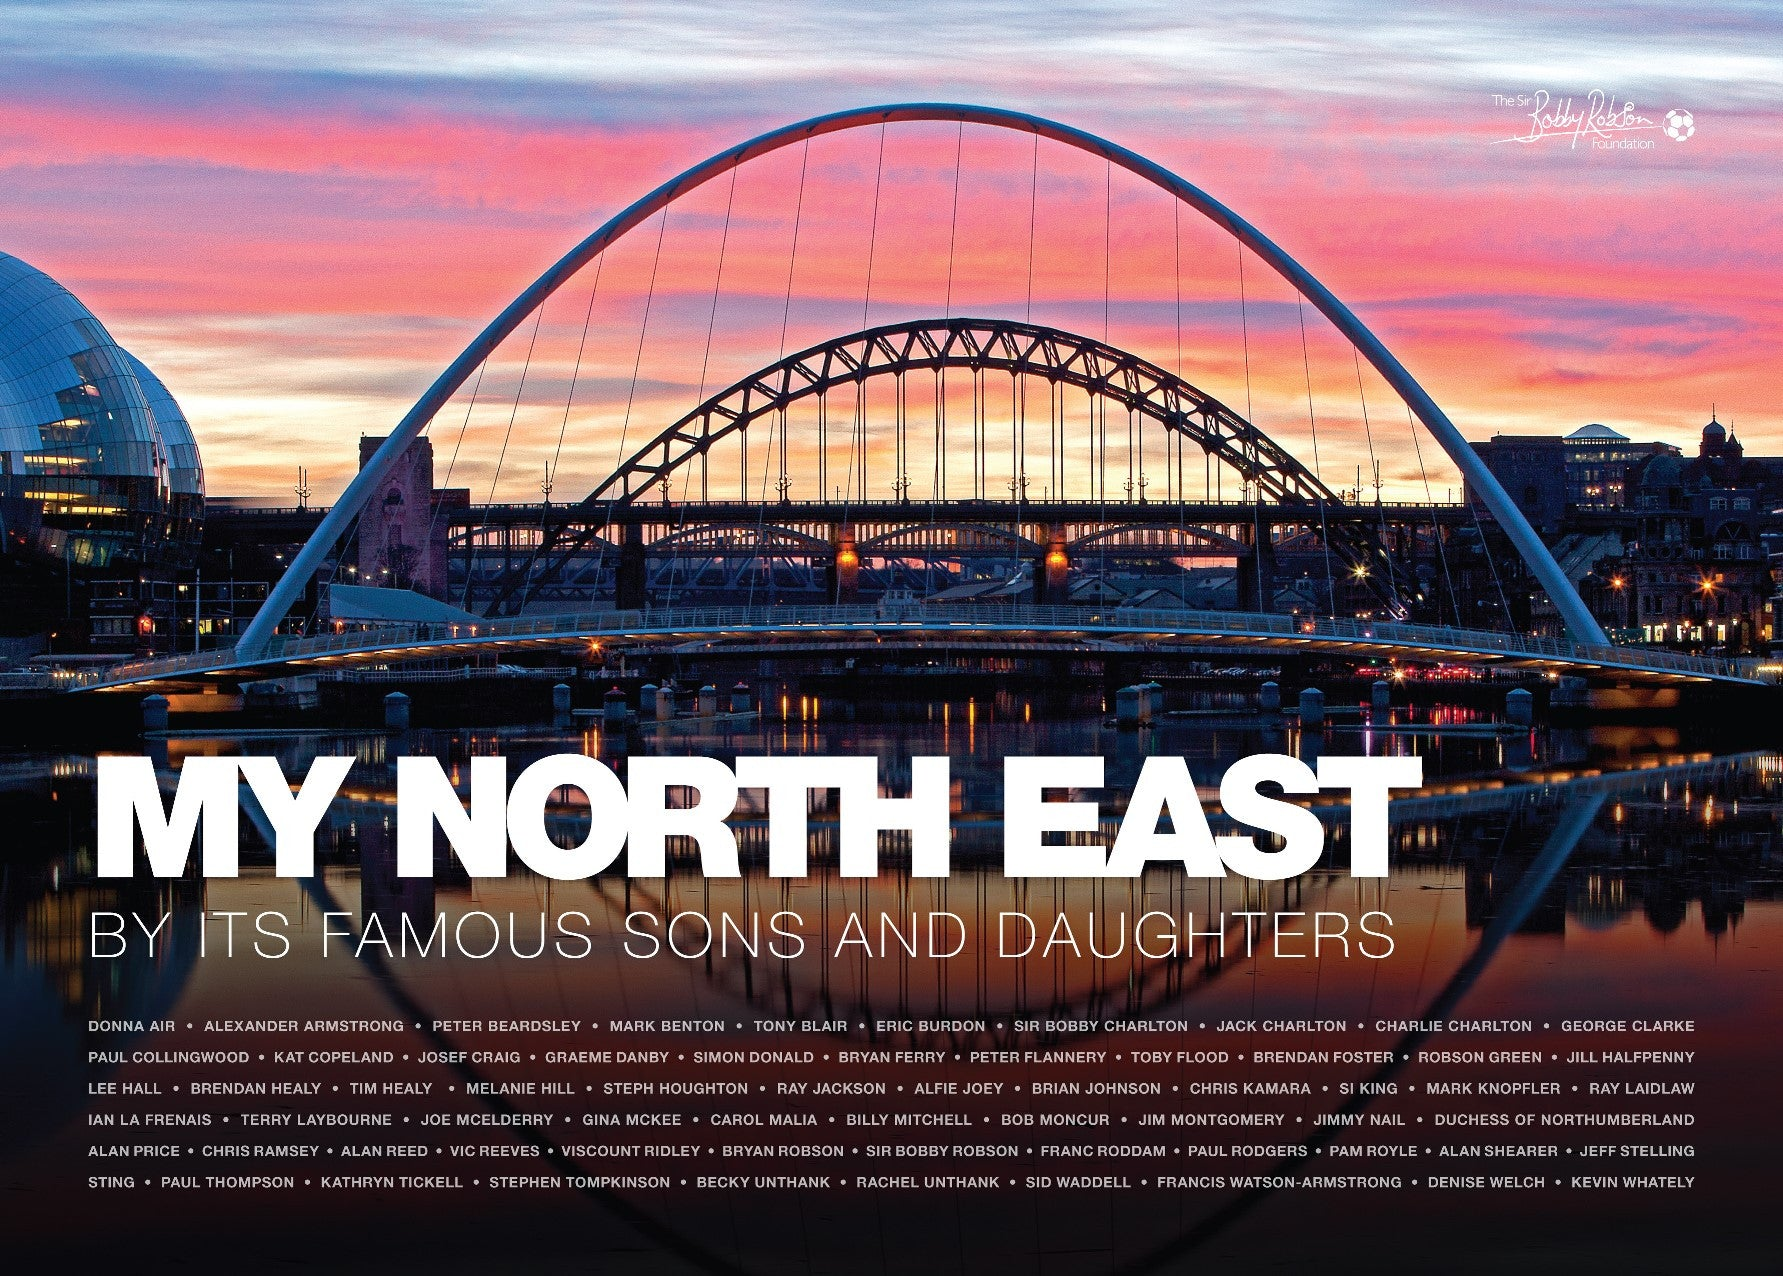 My North East: By its Famous Sons & Daughters